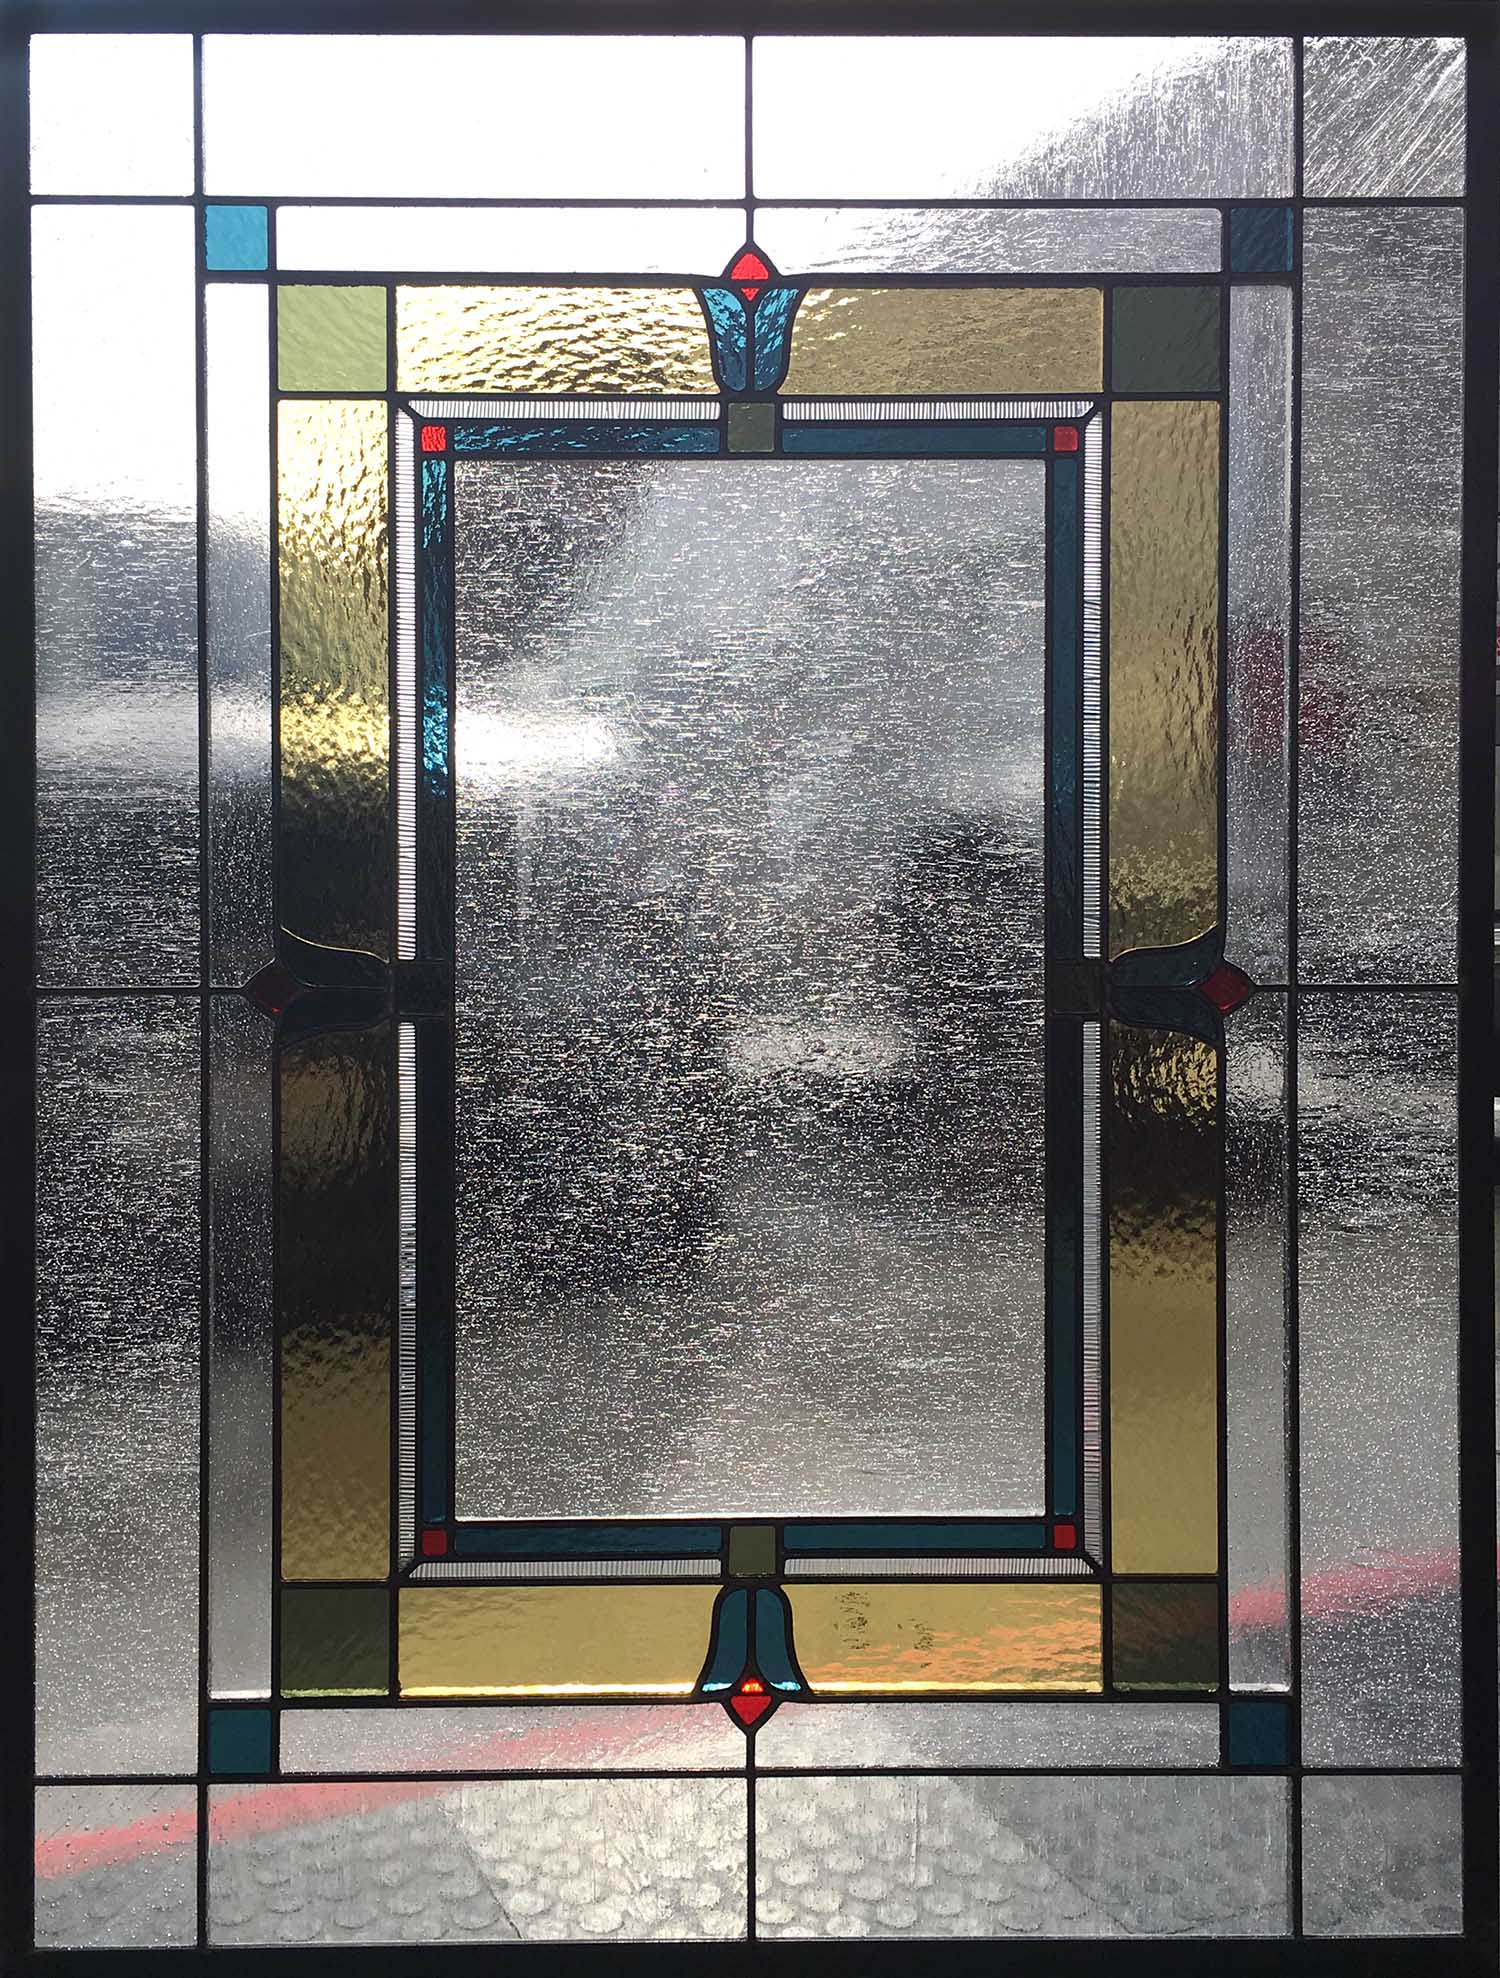 tulip floral accent seedy glass granite clear texture craftsman leaded glass stained glass window palo alto atherton california san francisco san jose.jpg